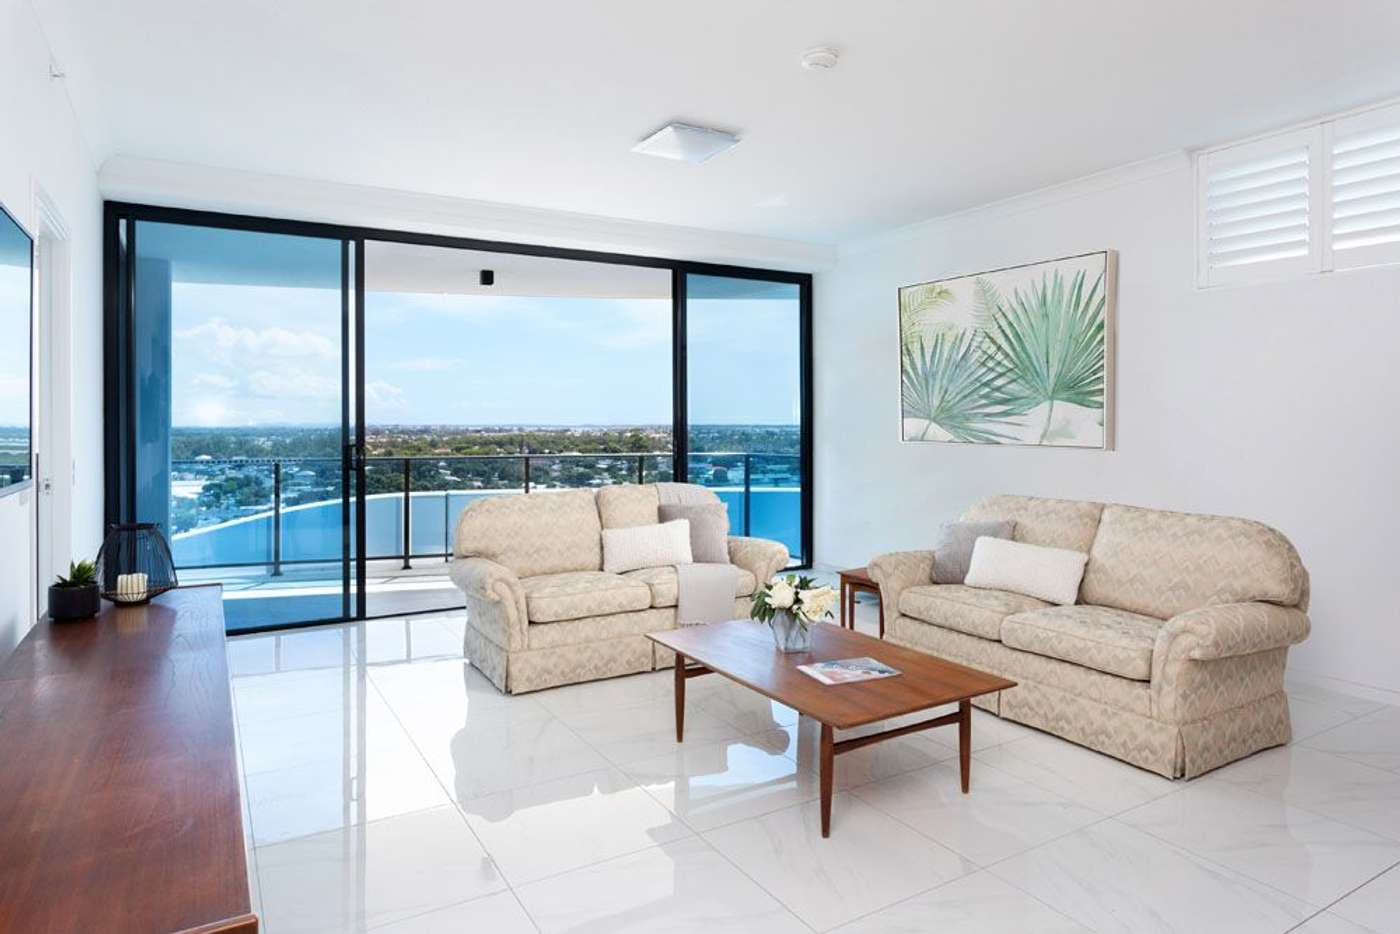 Sixth view of Homely unit listing, 31005/5 Harbour Side Court, Biggera Waters QLD 4216